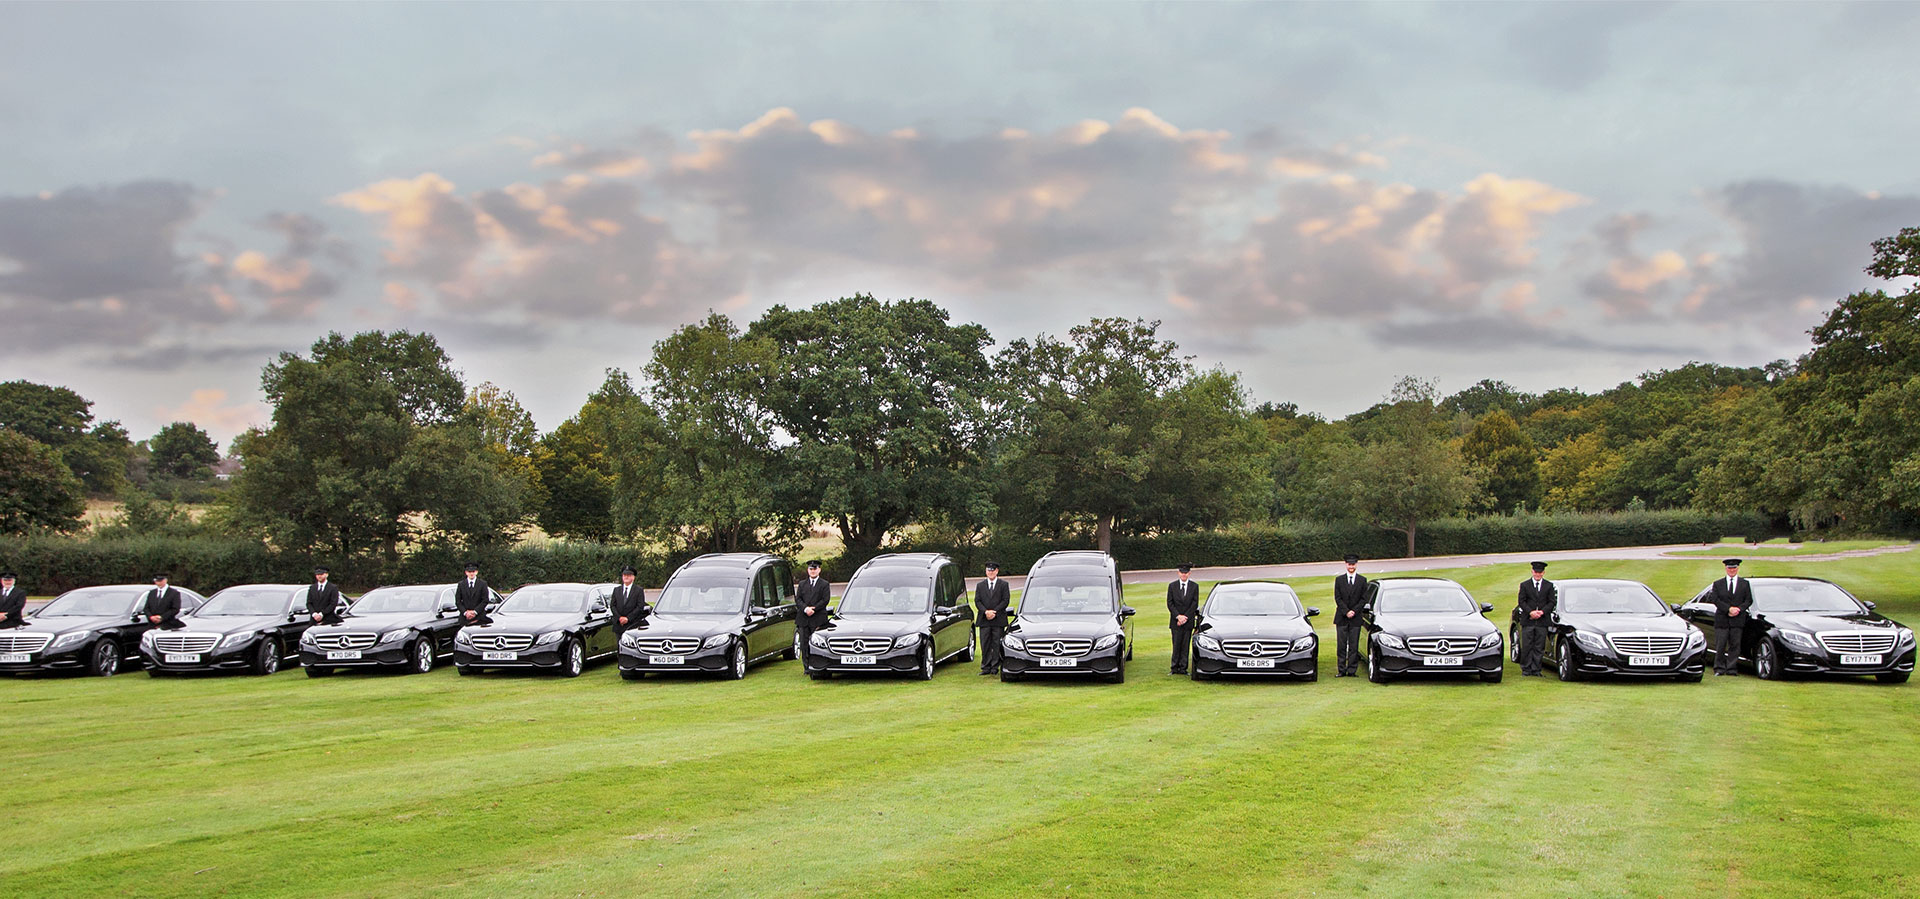 d-robinson-banner-image-funeral-vehicles